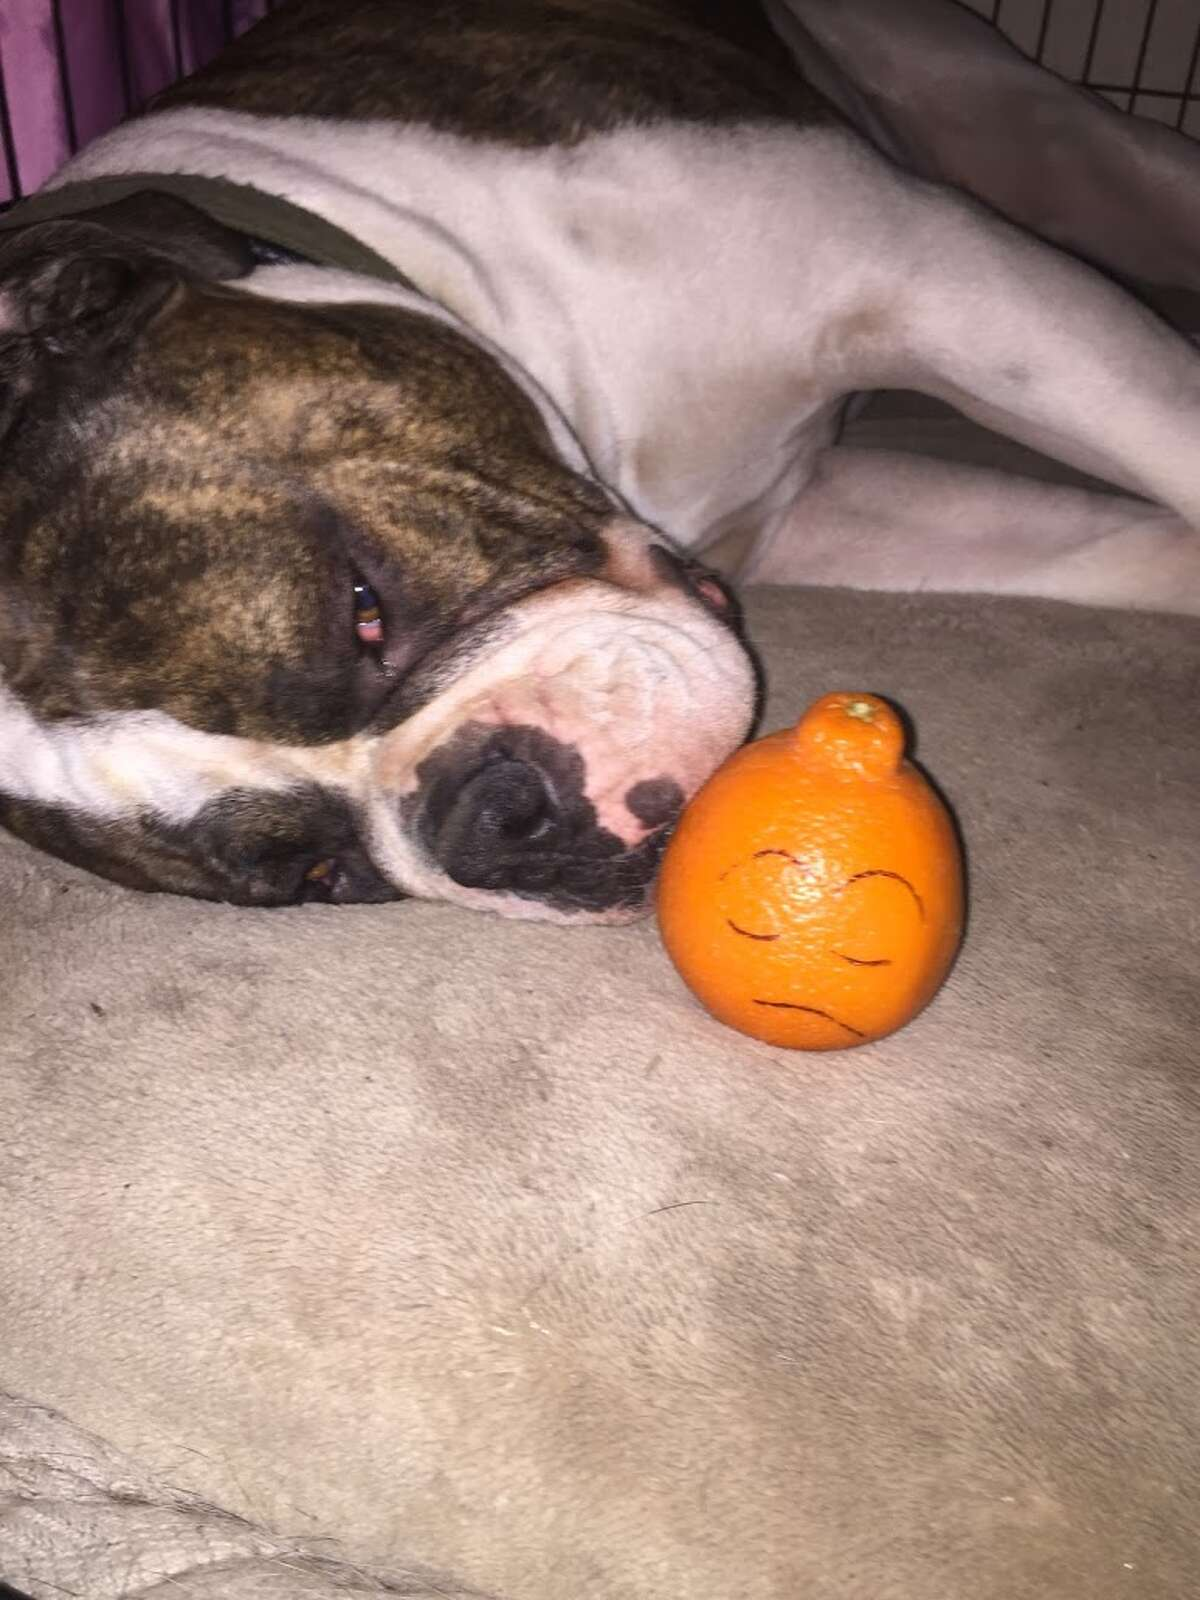 Junah, an American Bulldog, was injured alongside her owner, Pamela Chevalier-Jensen, in August when a Harris County deputy shot at the dog when Chevalier-Jensen opened the front door of her home. She'd summoned an officer so she could report a threat a girlfriend had received from her estranged husband. She'd also told call-takers she had three large dogs and was a concealed handgun licensee.